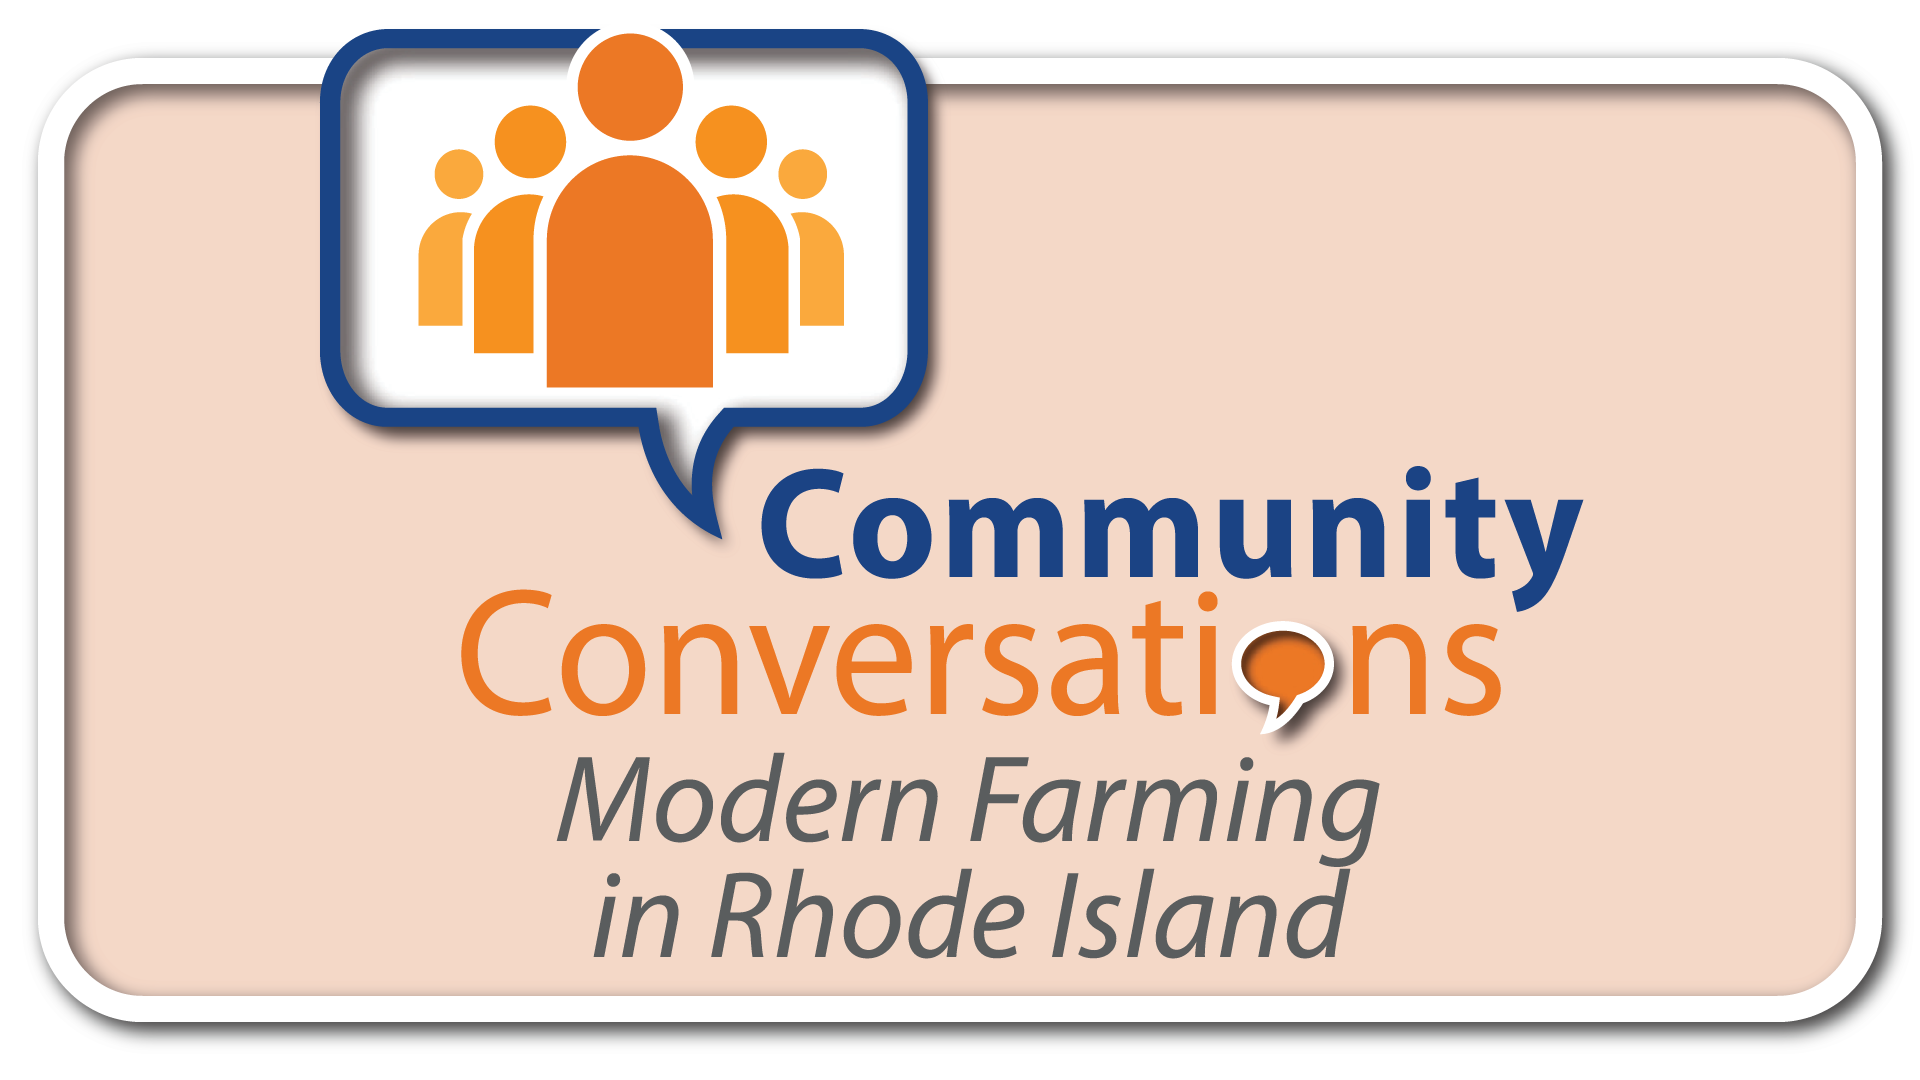 Community Conversations: Modern Farming in Rhode Island